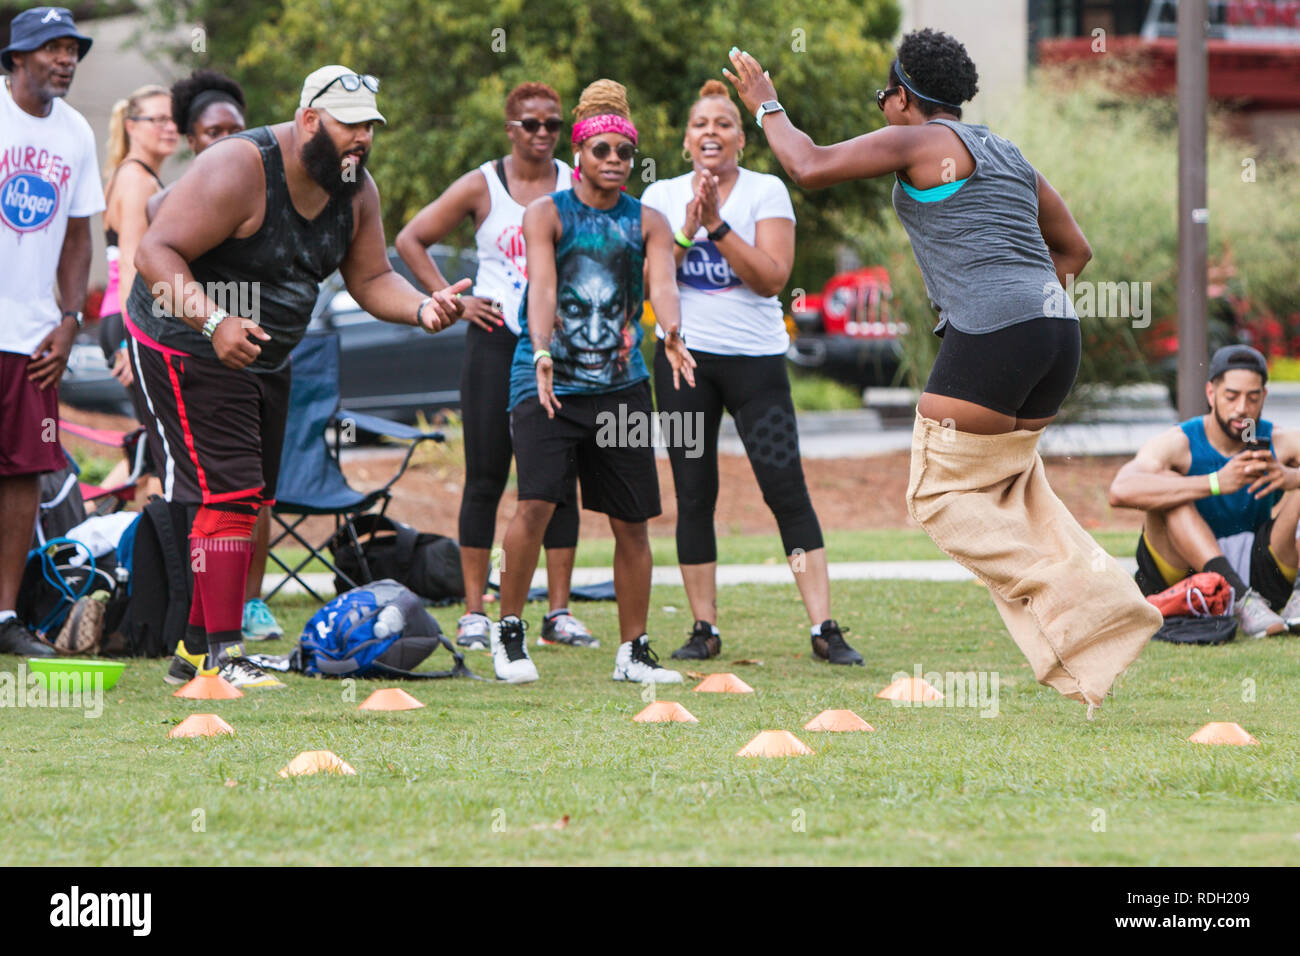 A woman gets airborne competing in the sack race competition at Atlanta Field Day in the Old Fourth Ward Park, on July 18, 2018 in Atlanta, GA. - Stock Image